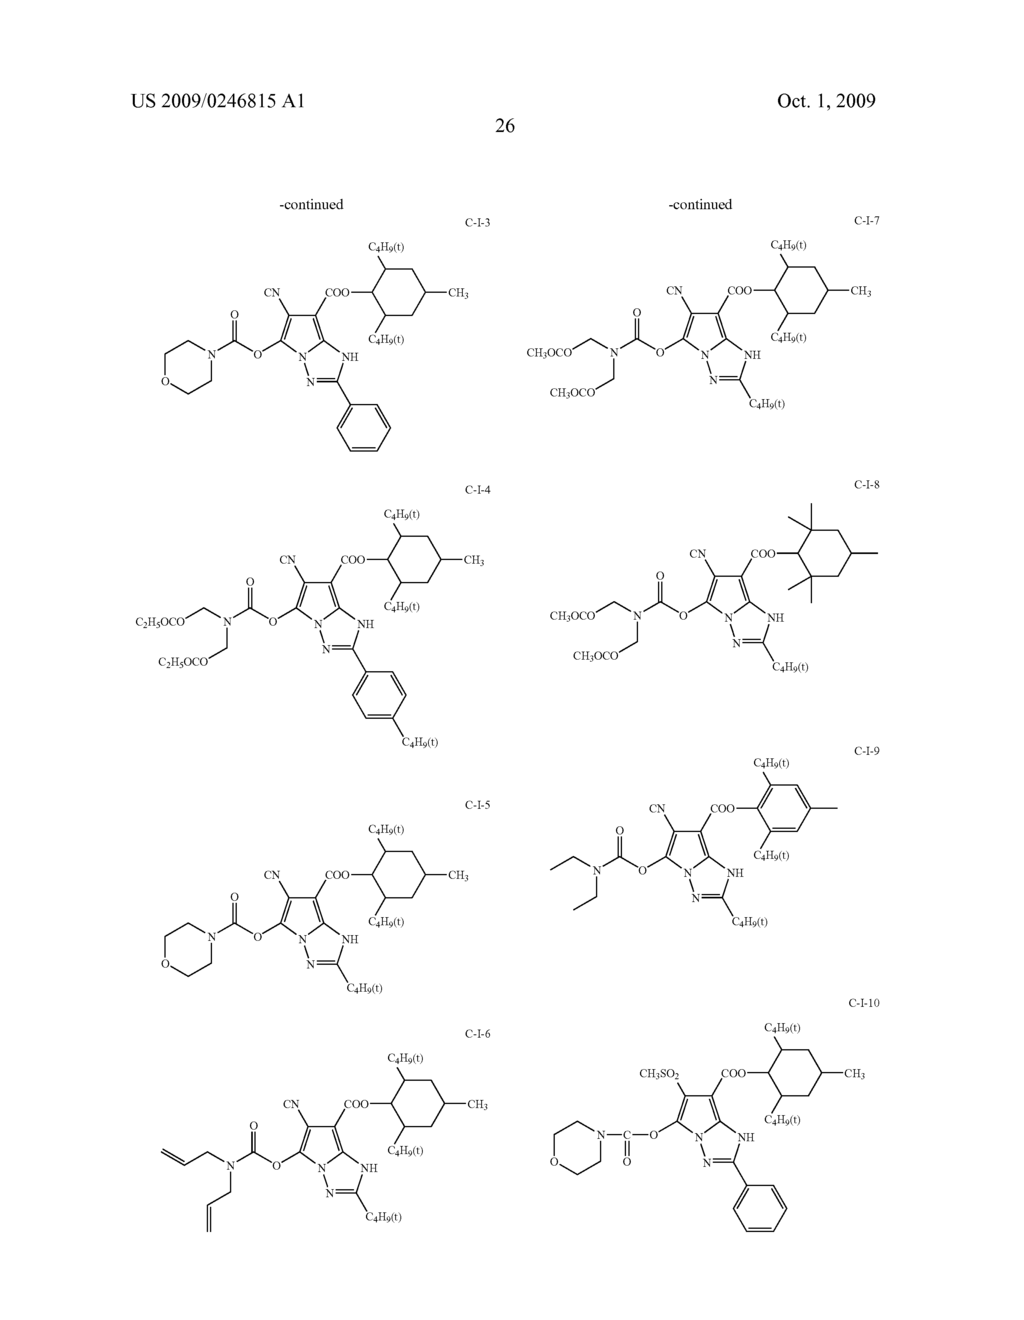 PROTEASE DETECTION MATERIAL, SET OF PROTEASE DETECTION MATERIALS, AND METHOD FOR MEASURING PROTEASE - diagram, schematic, and image 27